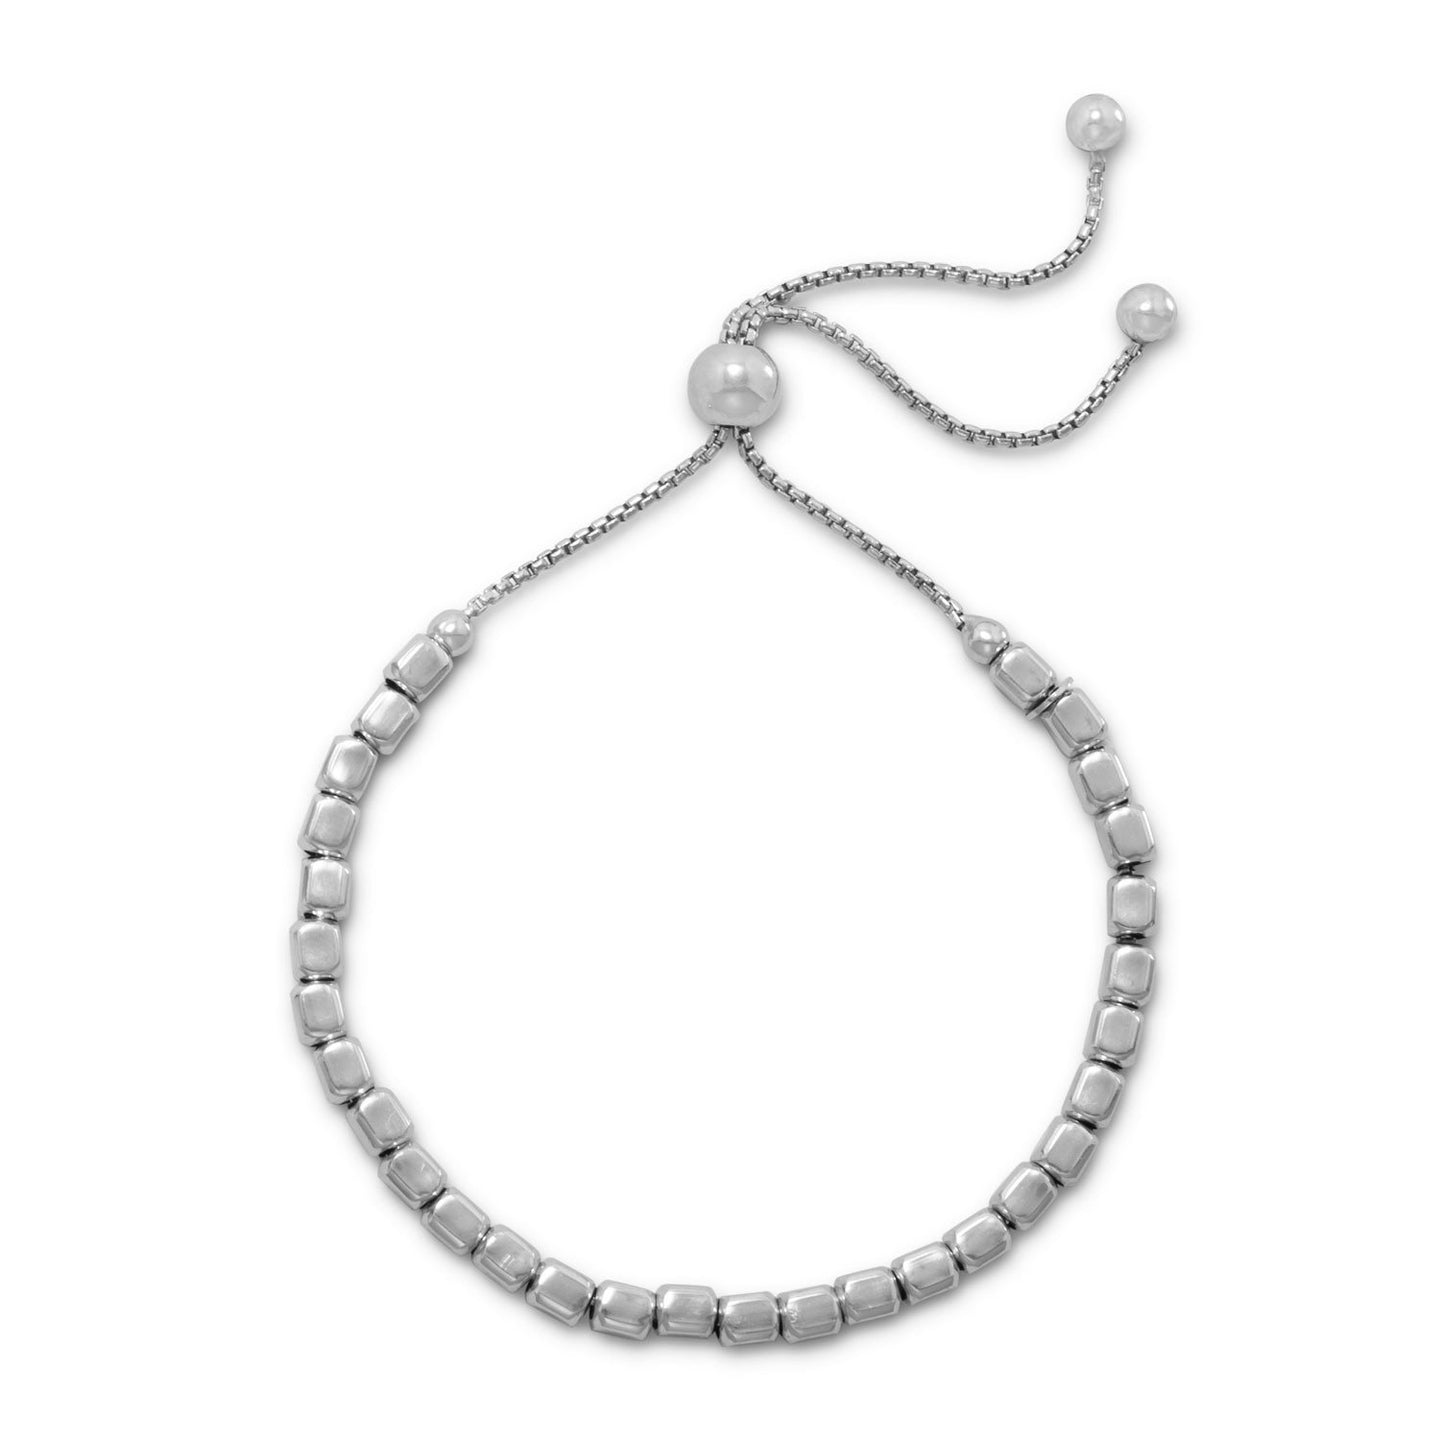 Rhodium Plated Square Bead Bolo Bracelet at 3 Barn Swallows, $59